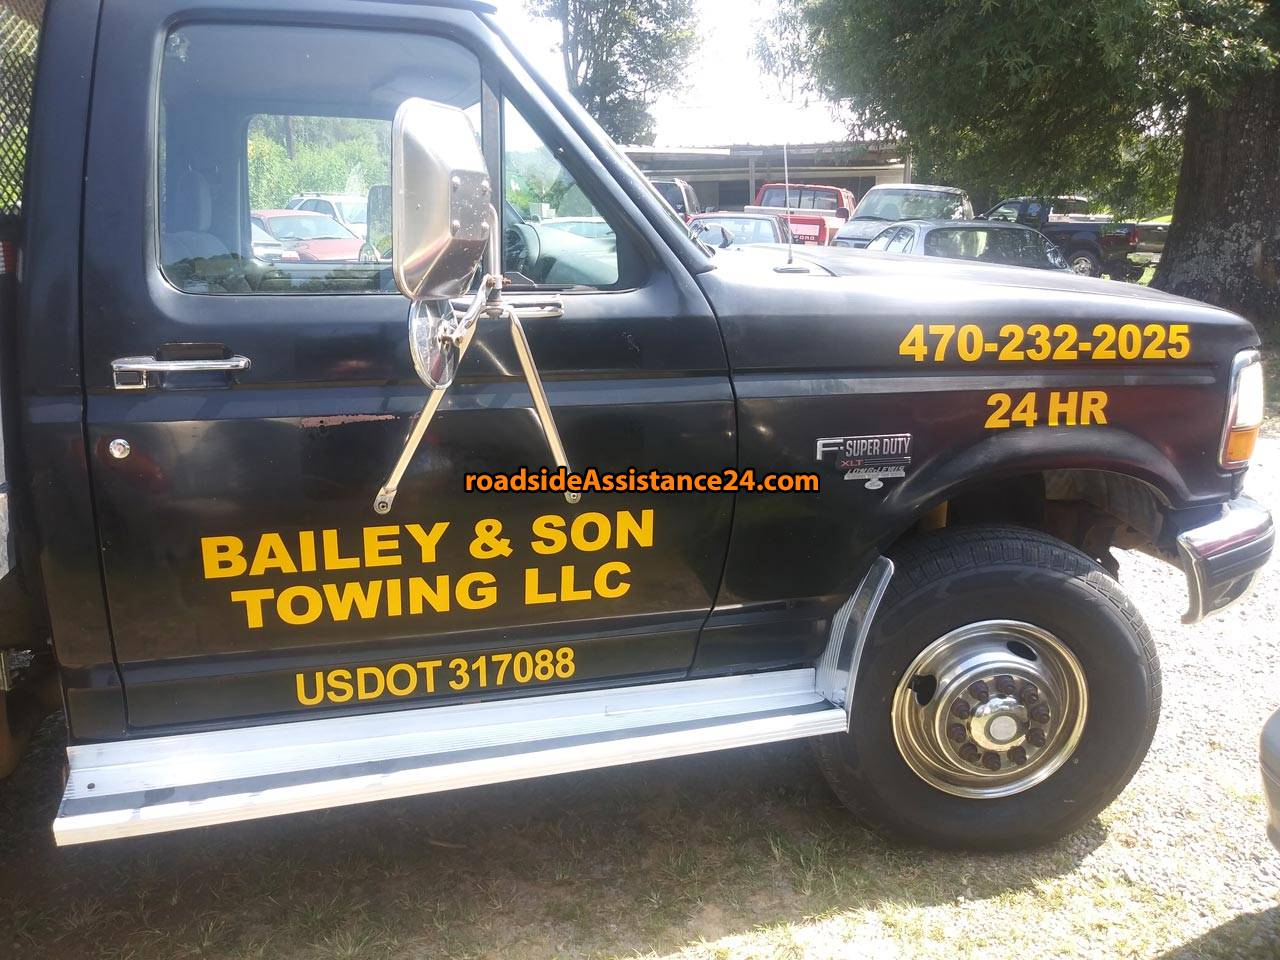 Bailey and son towing LLC